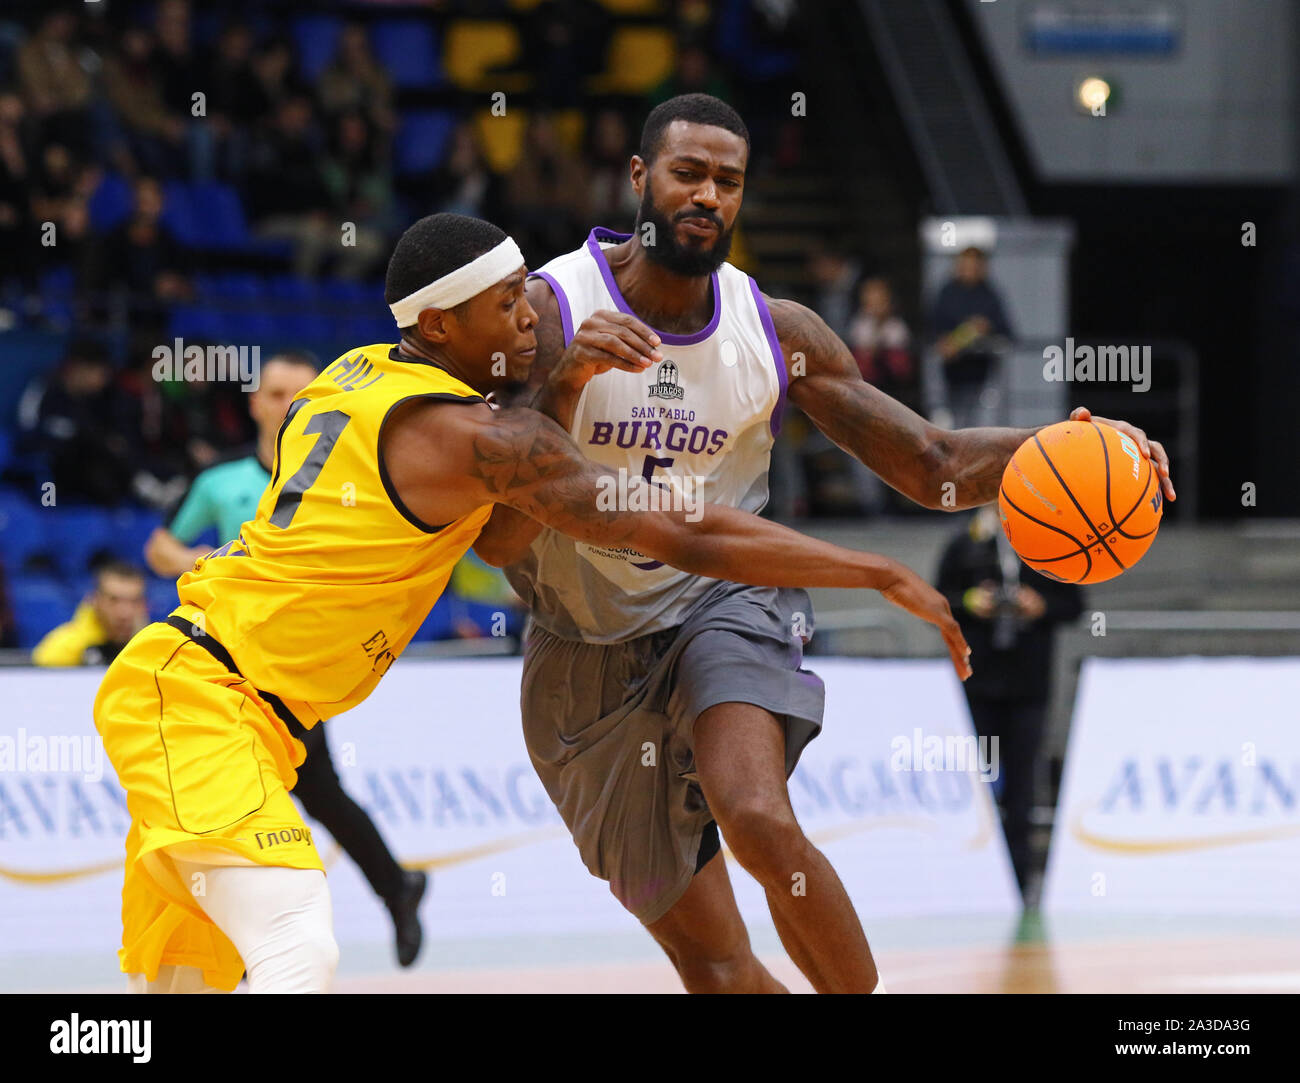 KYIV, UKRAINE - SEPTEMBER 26, 2019: Kyndahl Hill of BC Kyiv Basket (L) fights for a ball with Earl Clark of San Pablo Burgos during their FIBA Basketball Champions League Qualifiers game Stock Photo